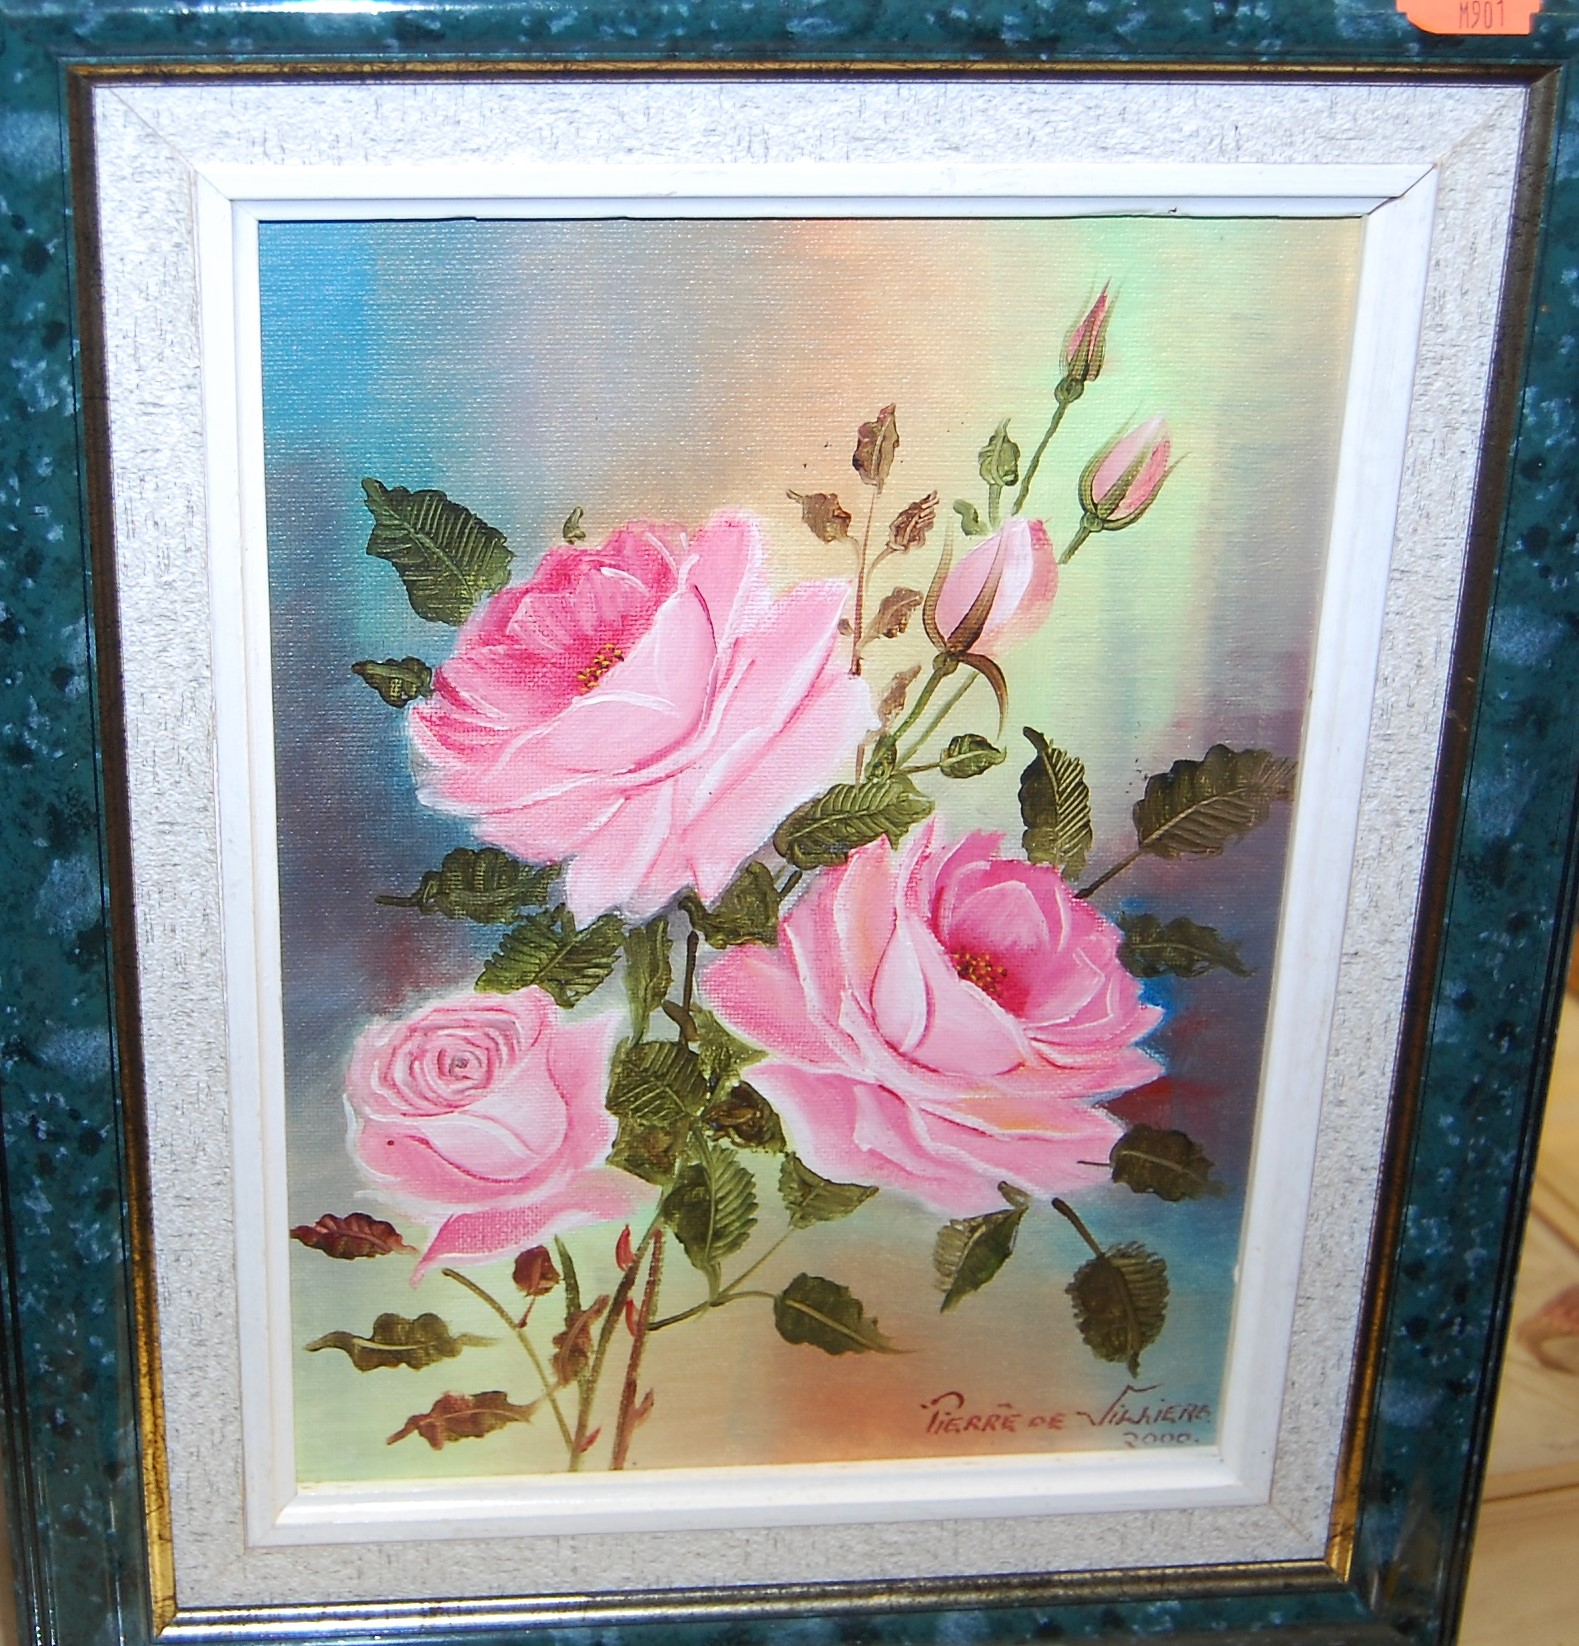 Lot 1038 - Pierre de Villiers - Roses, acrylic on canvas, 27 x 19cm; and J.A. Long - Footpath through Cavendish